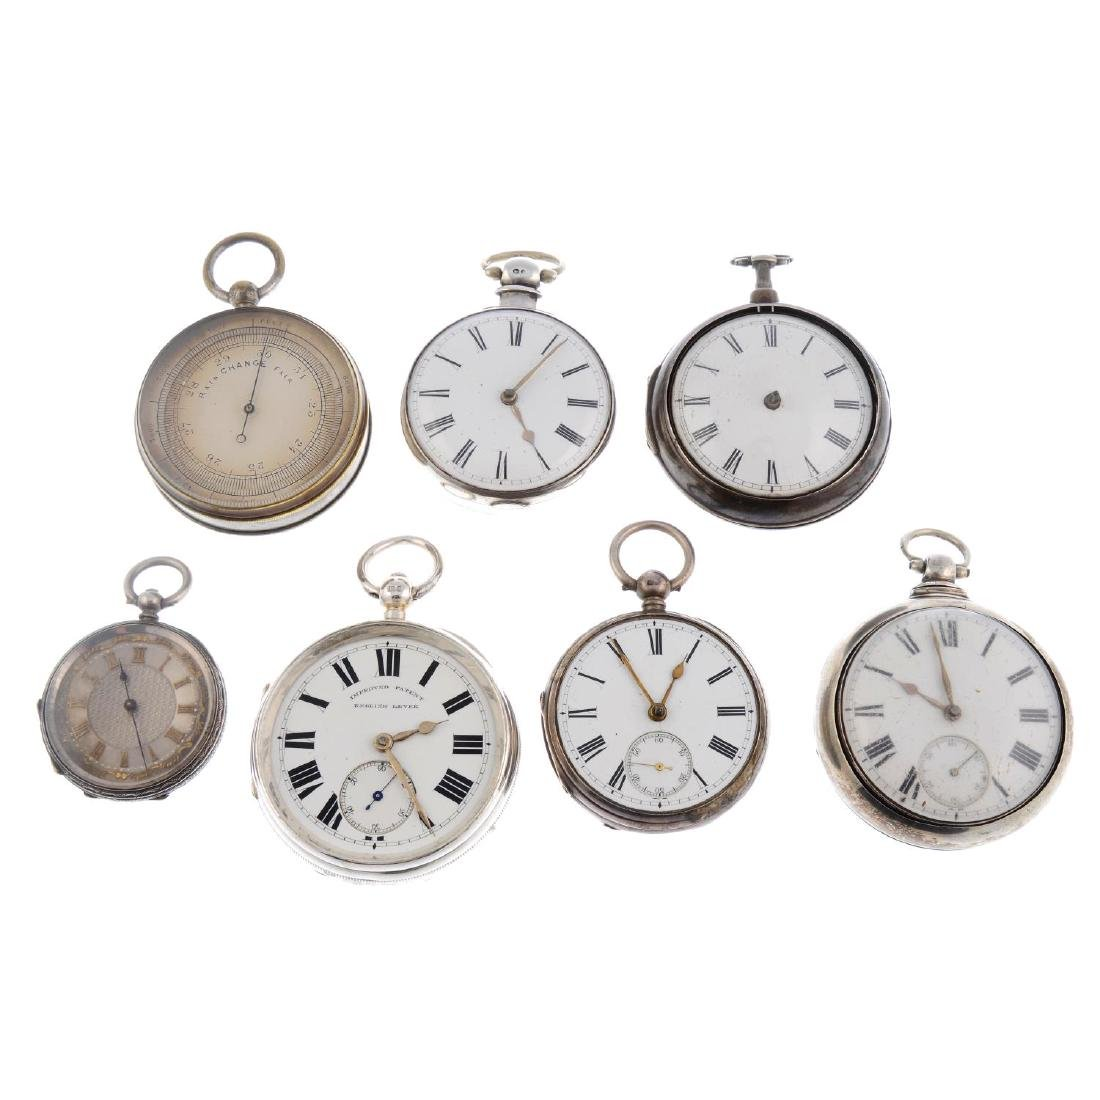 A group of six assorted pocket watches and a pocket